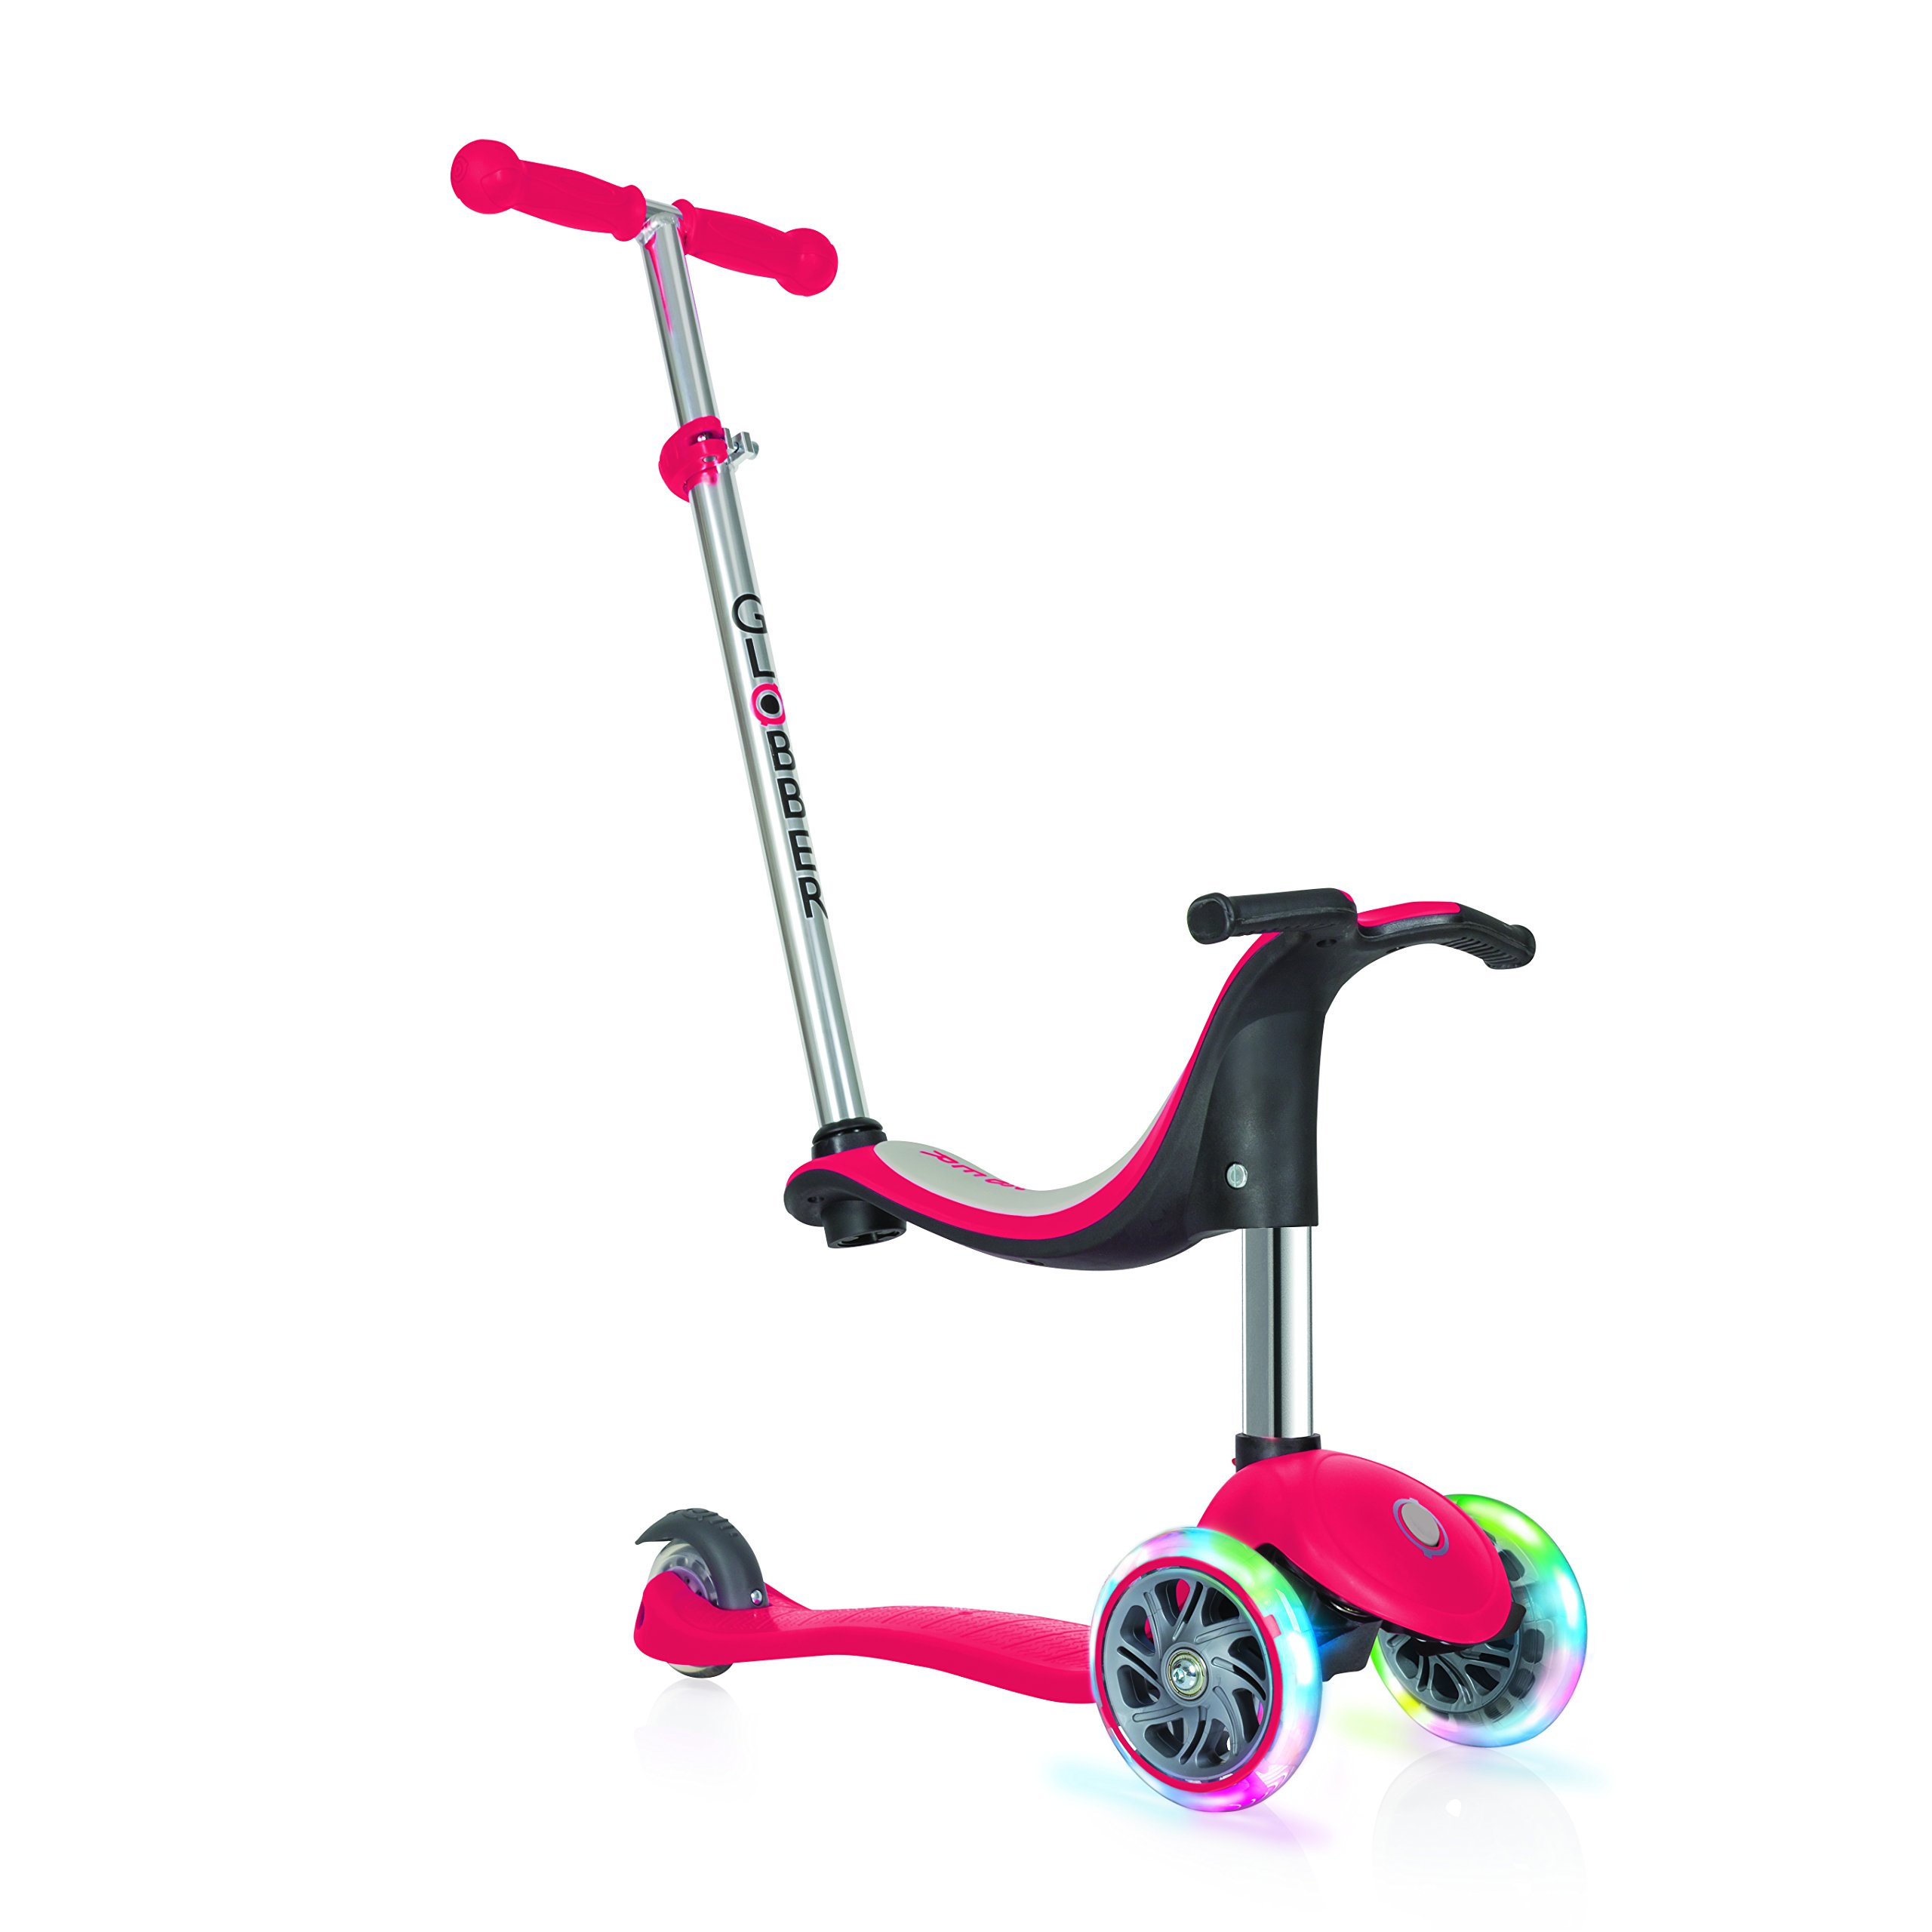 Globber Evo 3 Wheel 4-in-1 Convertible Scooter (Red LED)